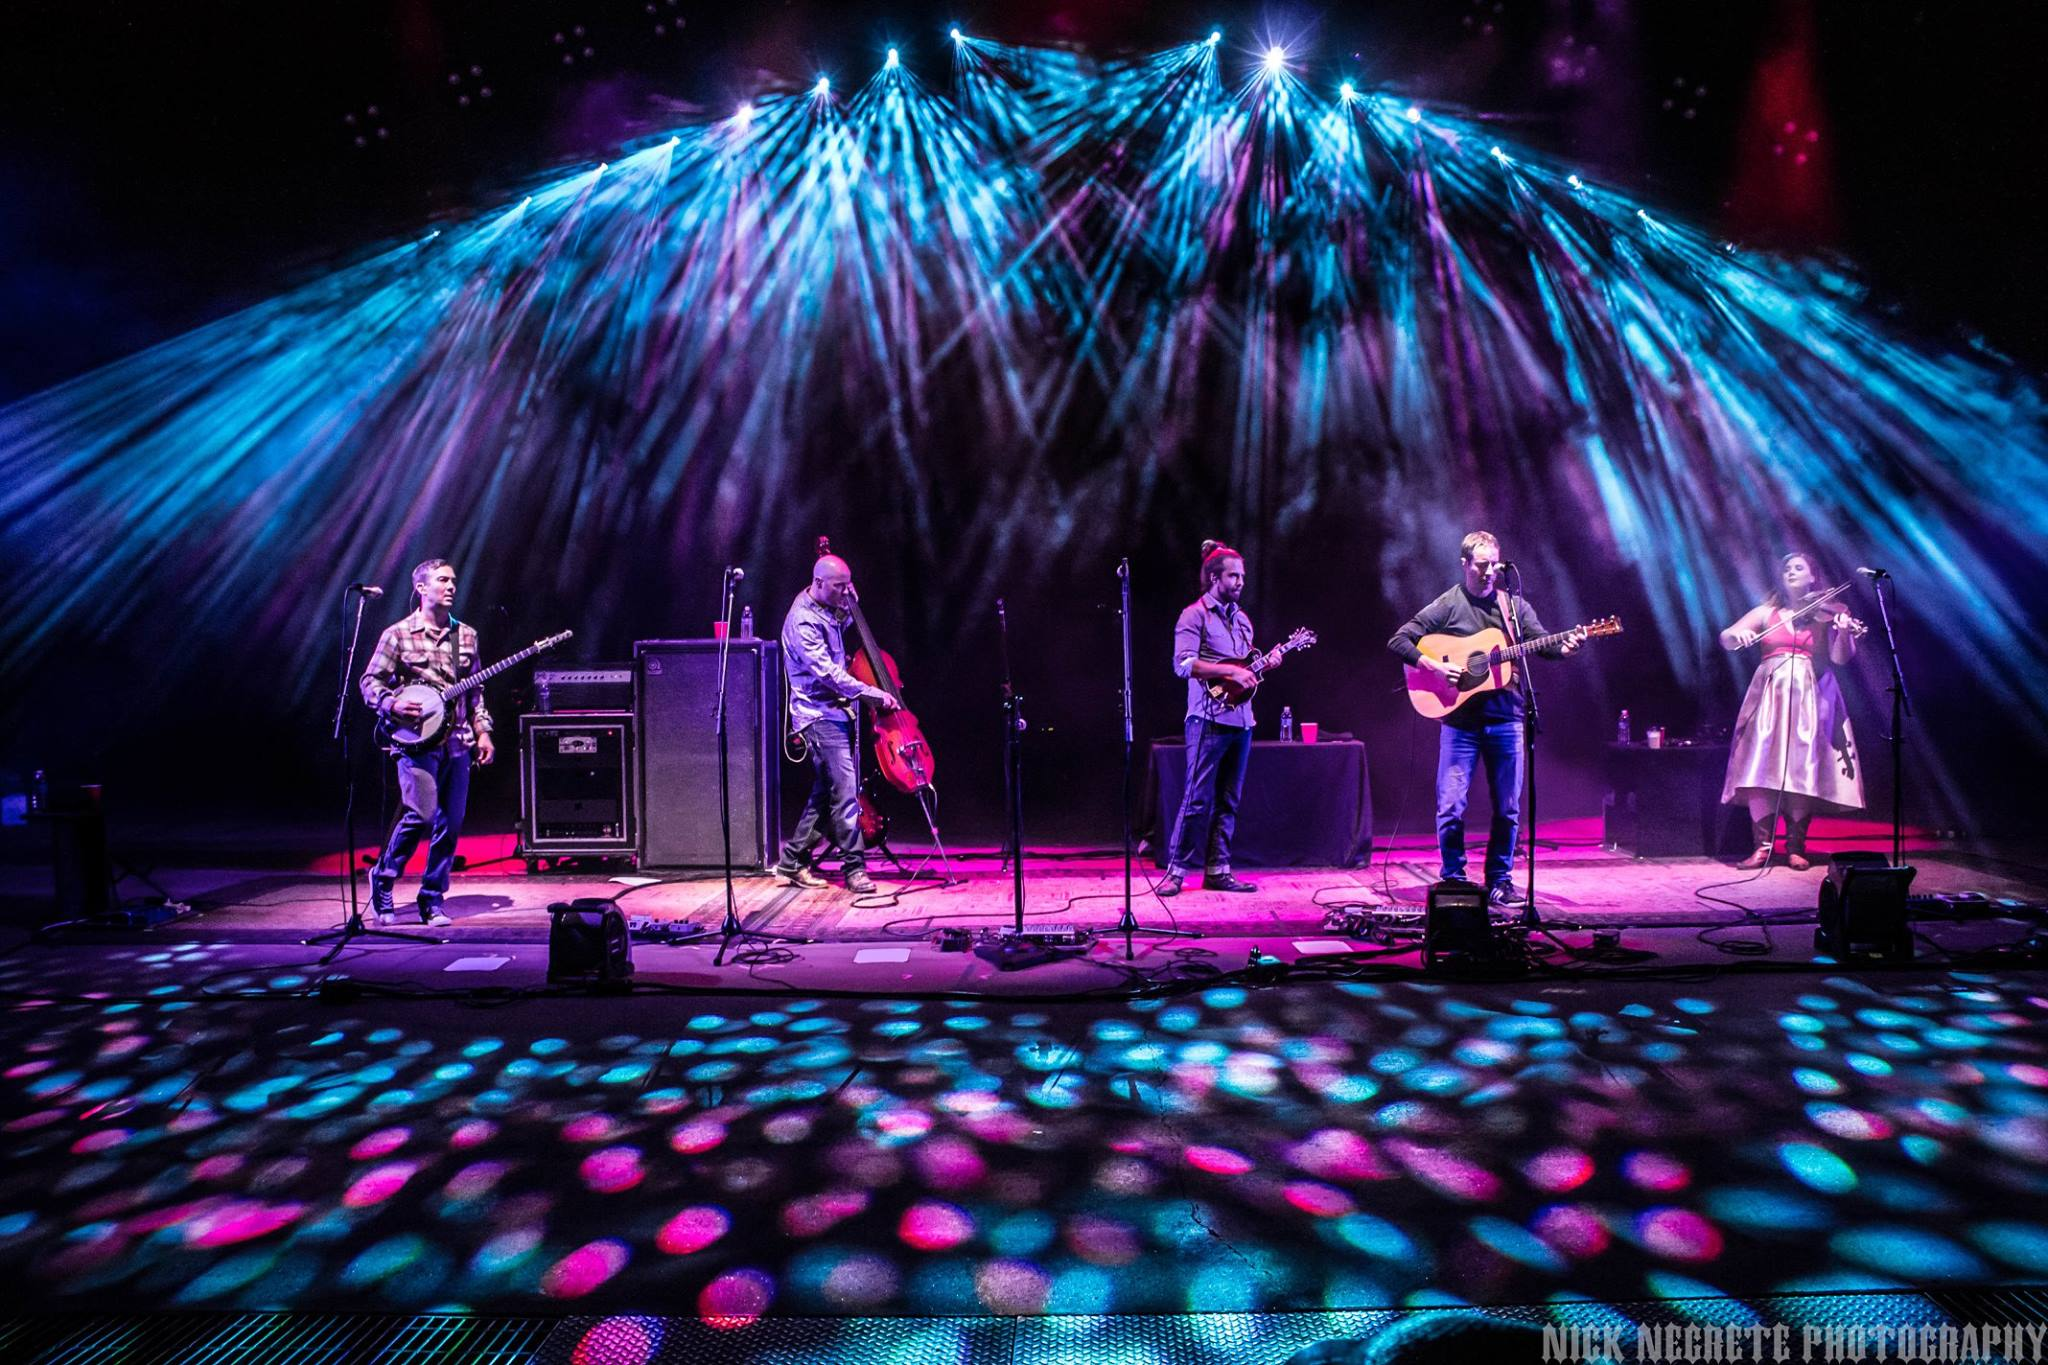 Yonder Mountain String Band | Aug. 20, 2016 · Red Rocks Amphitheatre - Morrison, Co | Lighting by Pulse Lighting | Photo ©2016 Nick Negrete Photography